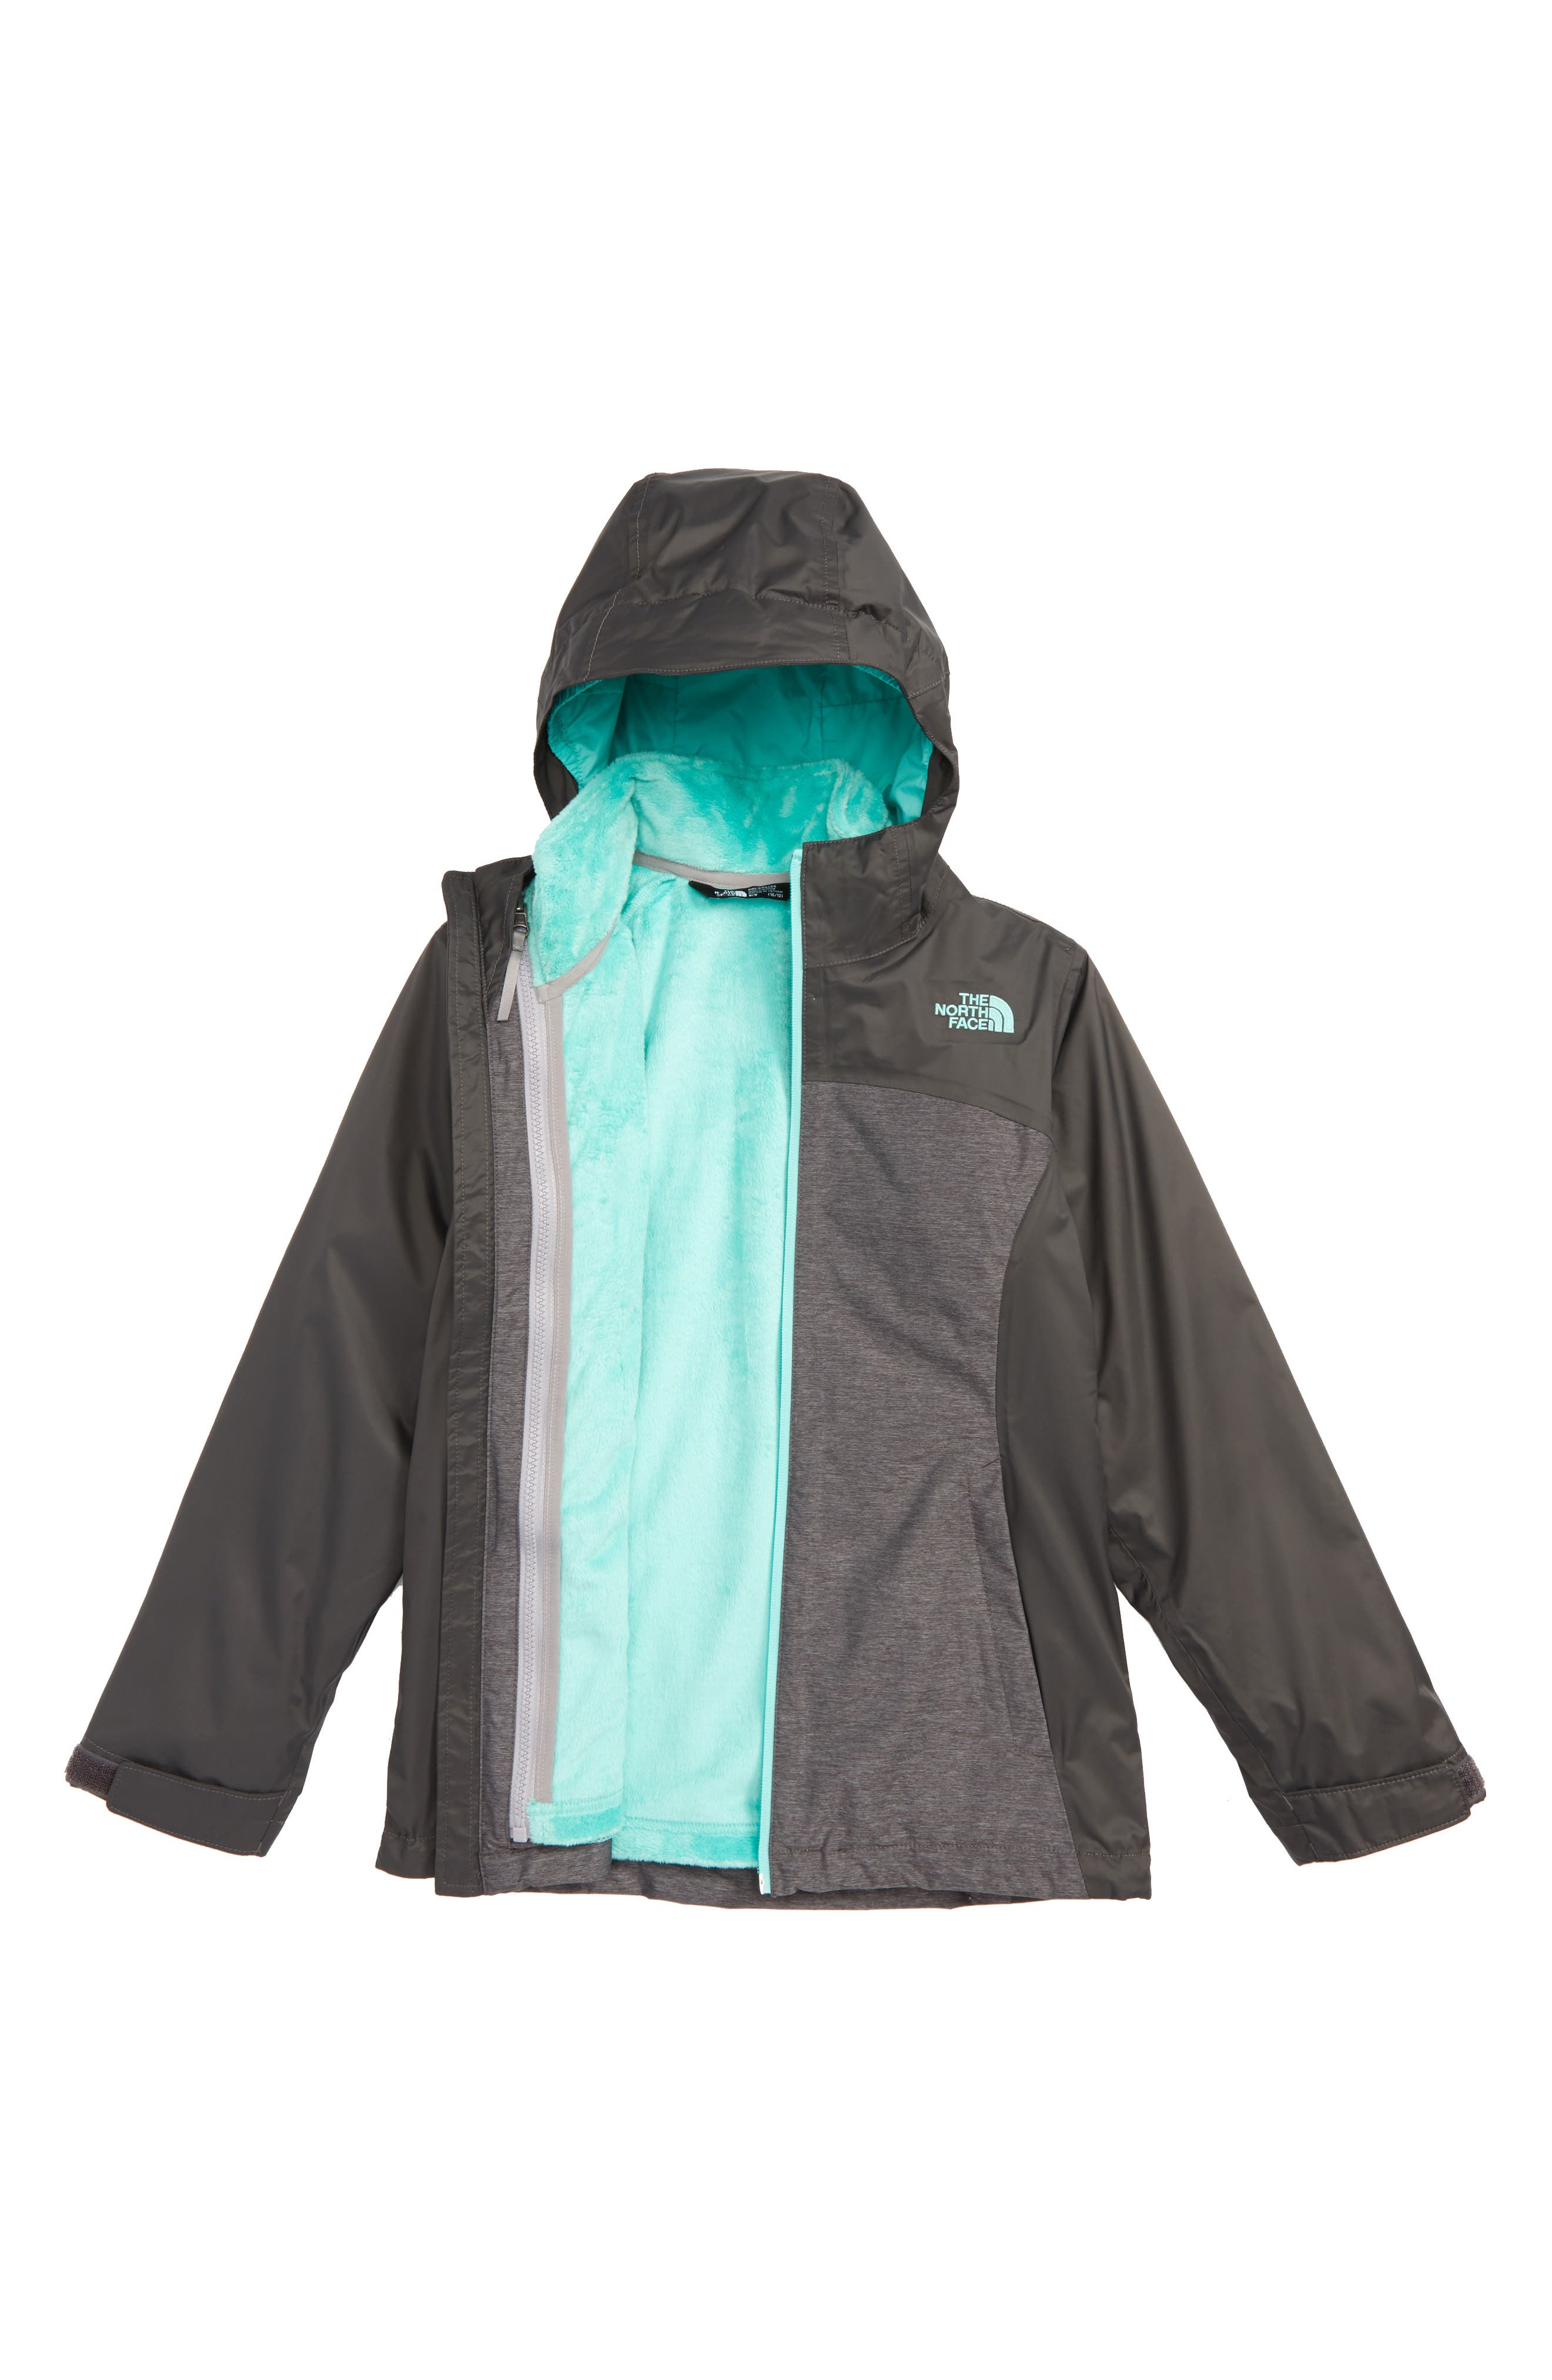 Alternate Image 1 Selected - The North Face Osolita TriClimate® Waterproof 3-in-1 Jacket (Little Girls & Big Girls)